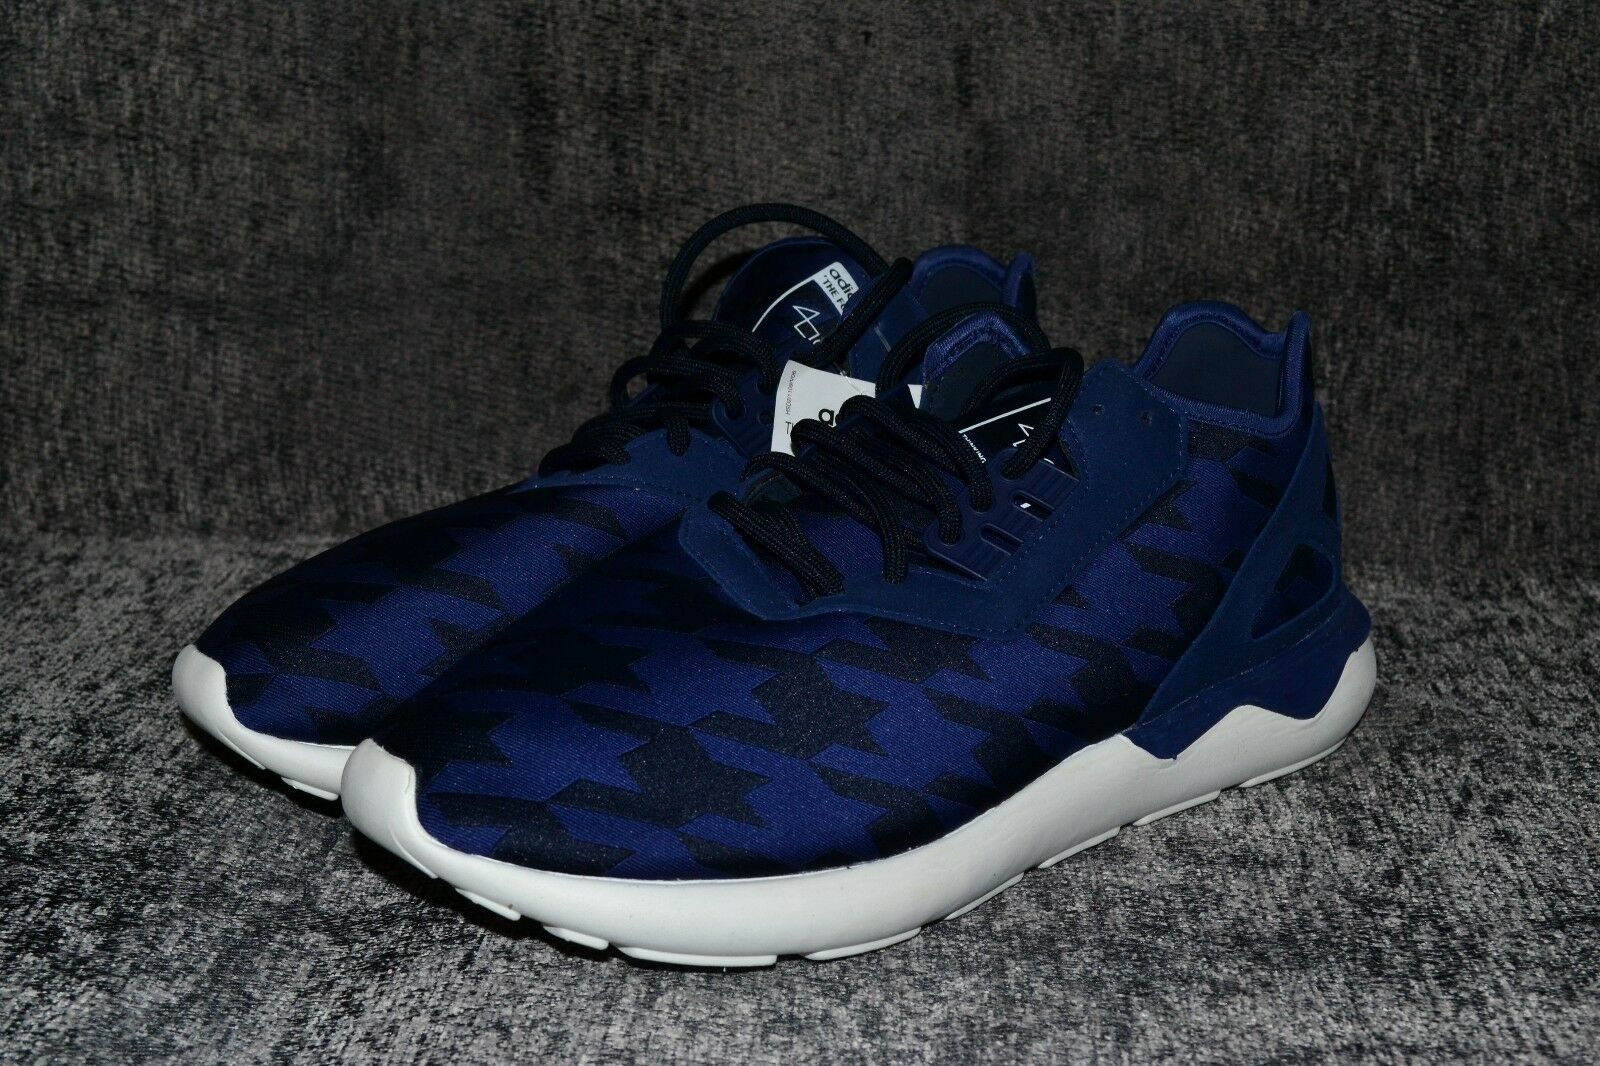 Adidas Originals Tubular Runner fourness Japan Kazuki 9.5 uk, uk 10 Raro